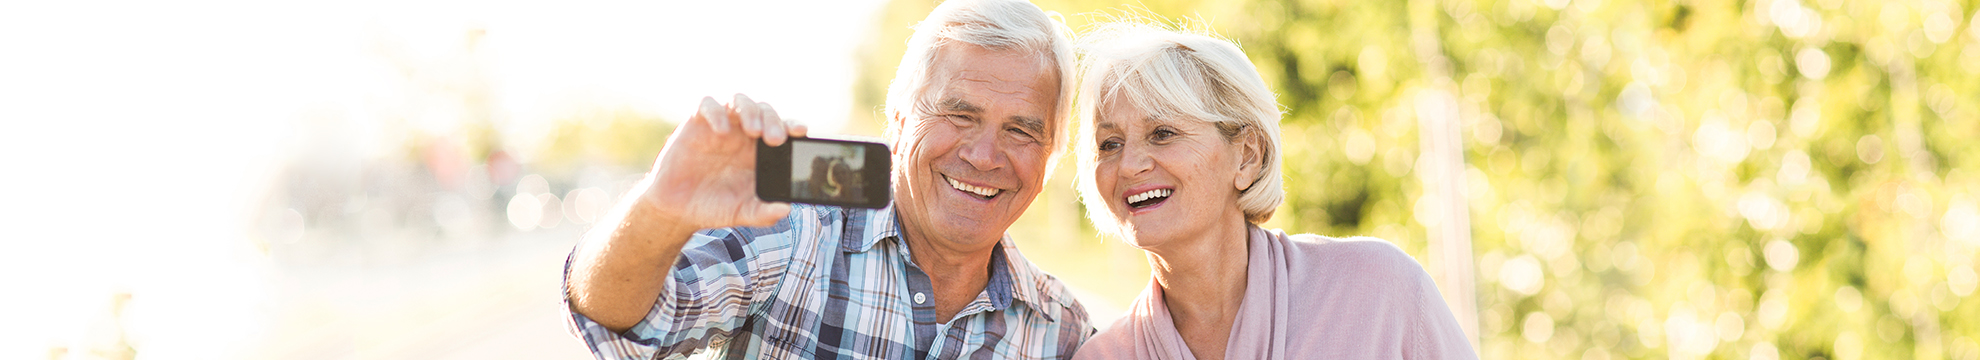 Older couple taking photo together